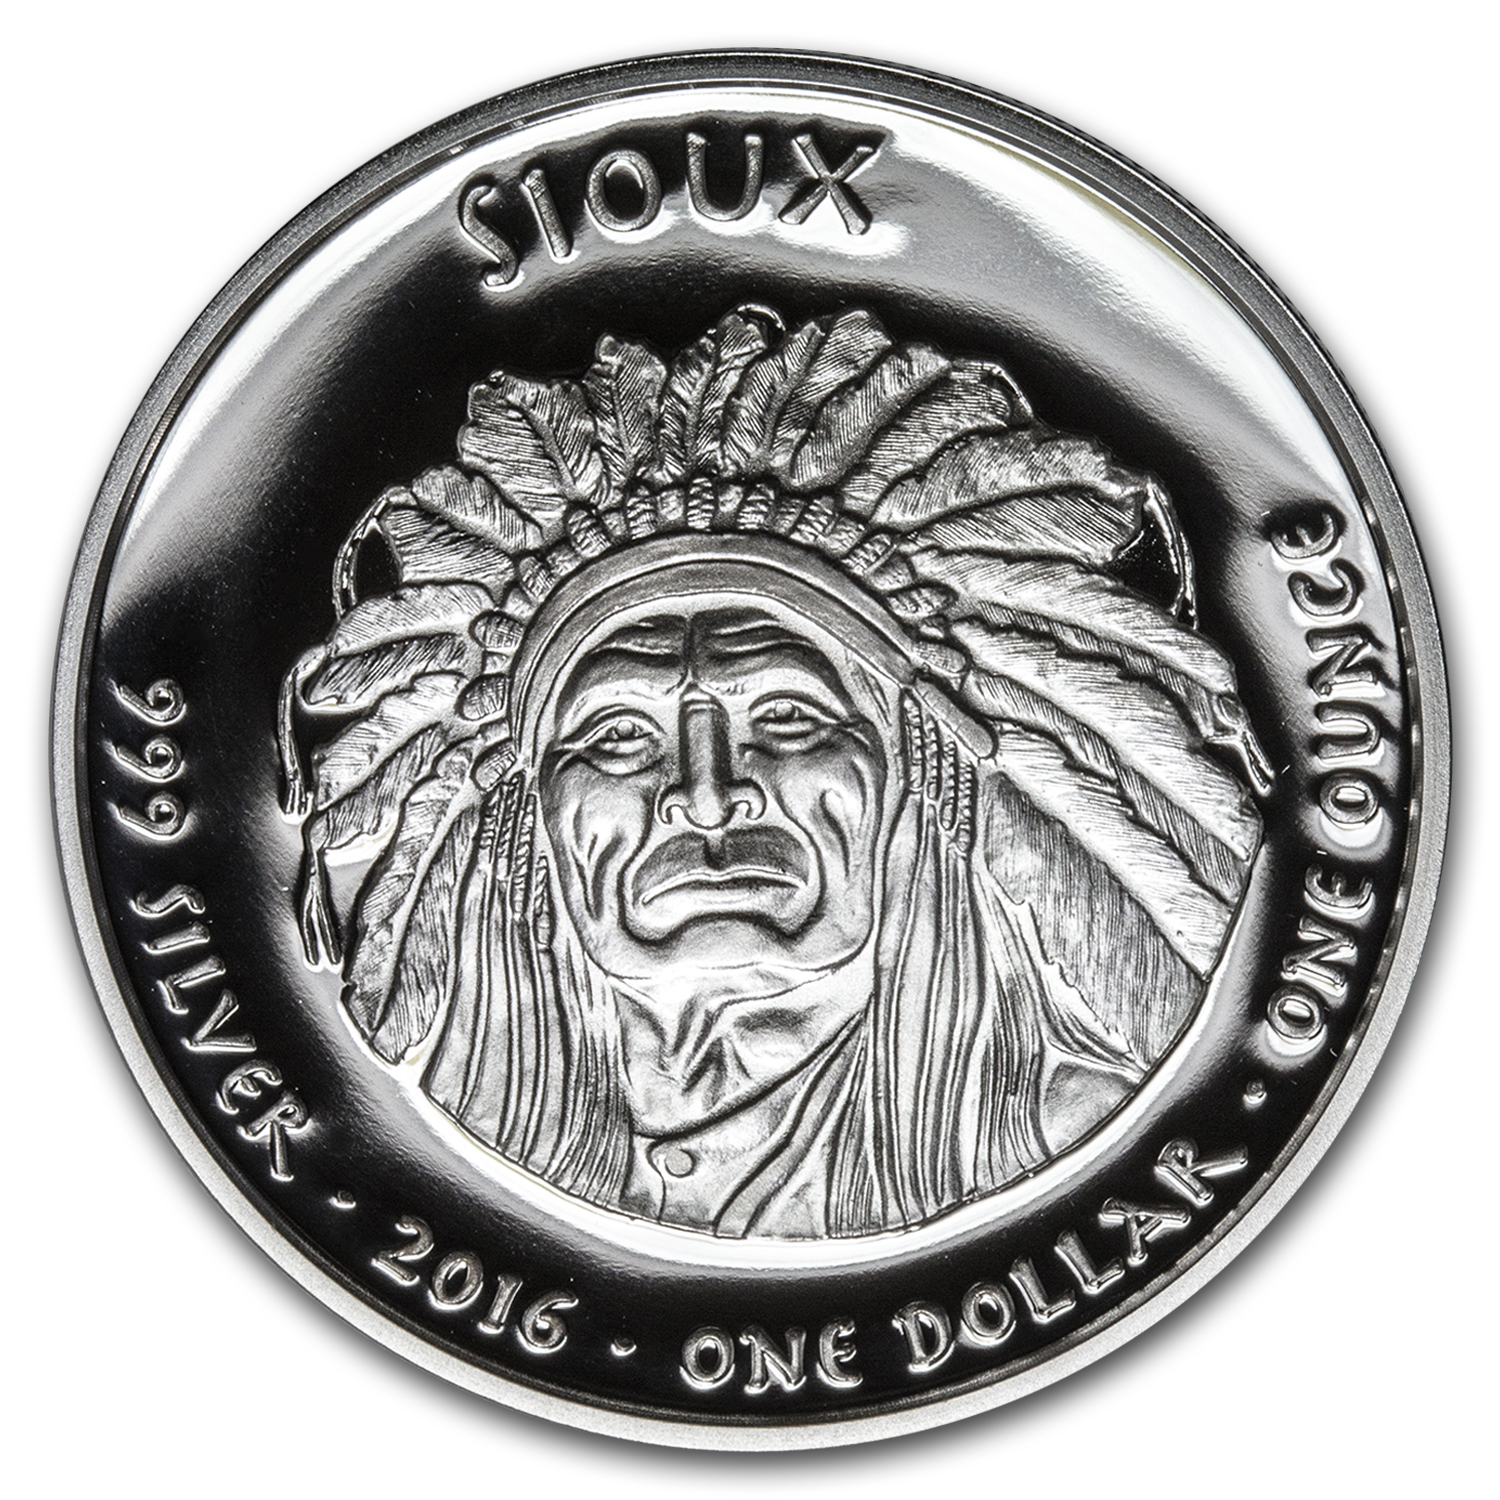 2016 1 oz Silver Proof State Dollars South Dakota Sioux